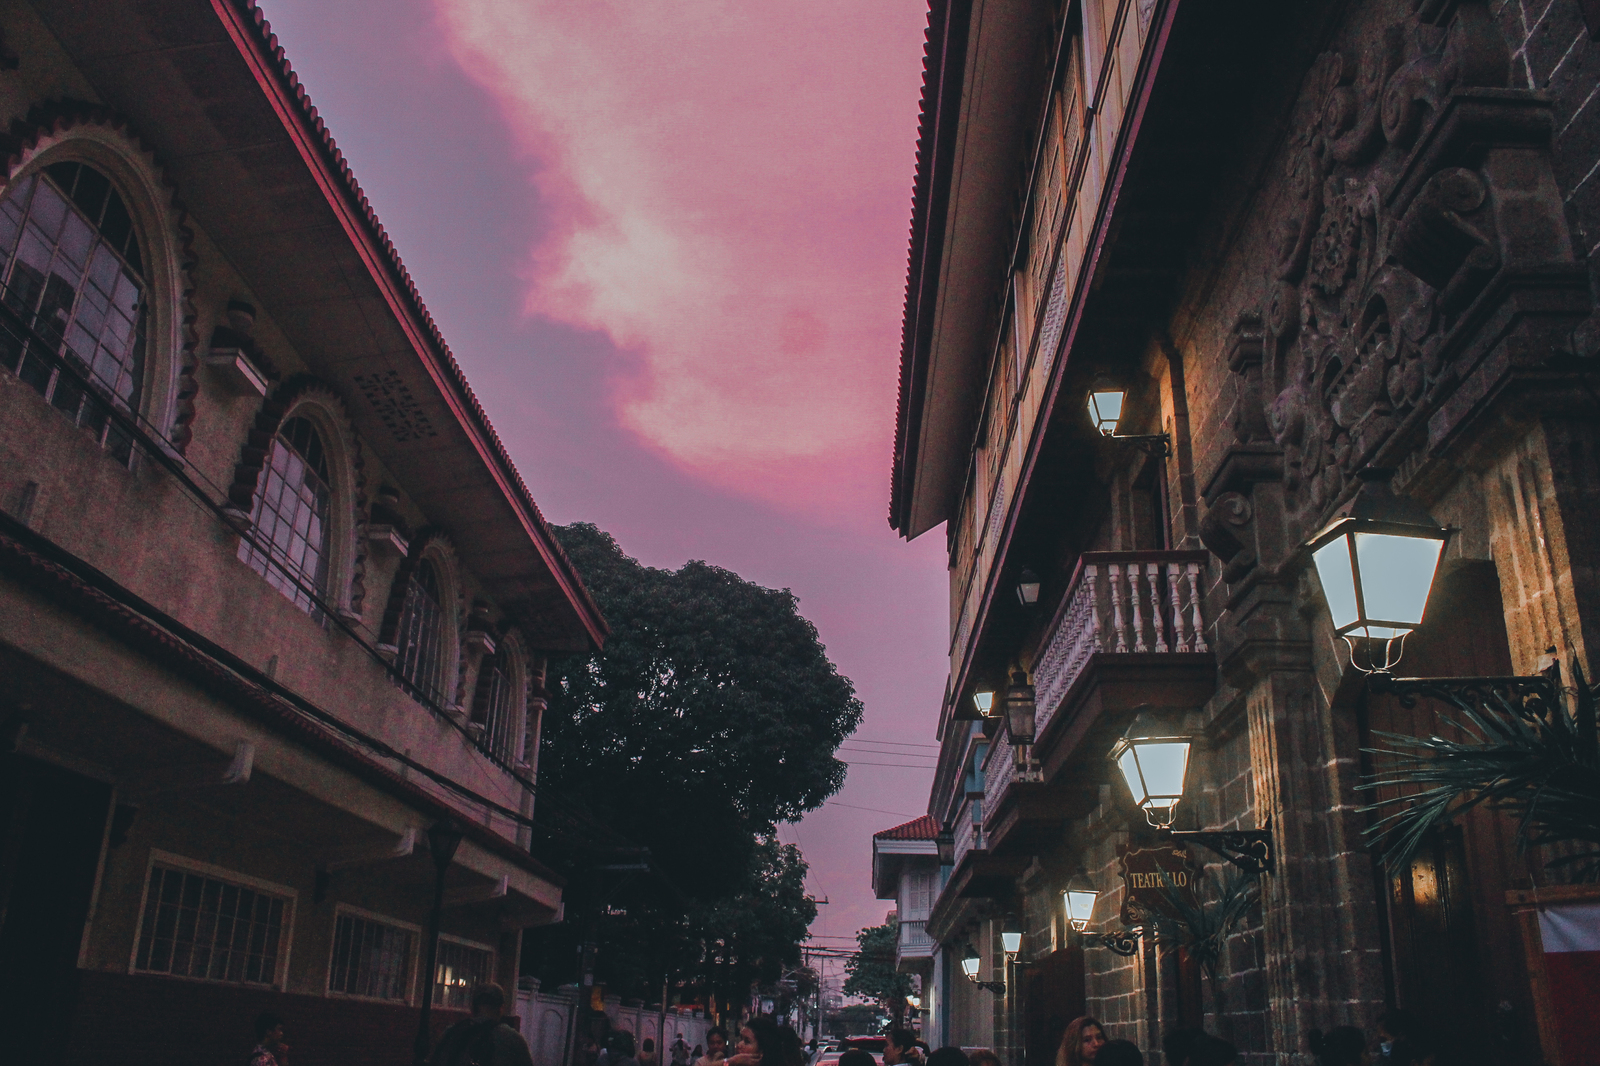 Pink Skies over the old walled city of Intramuros, Manila